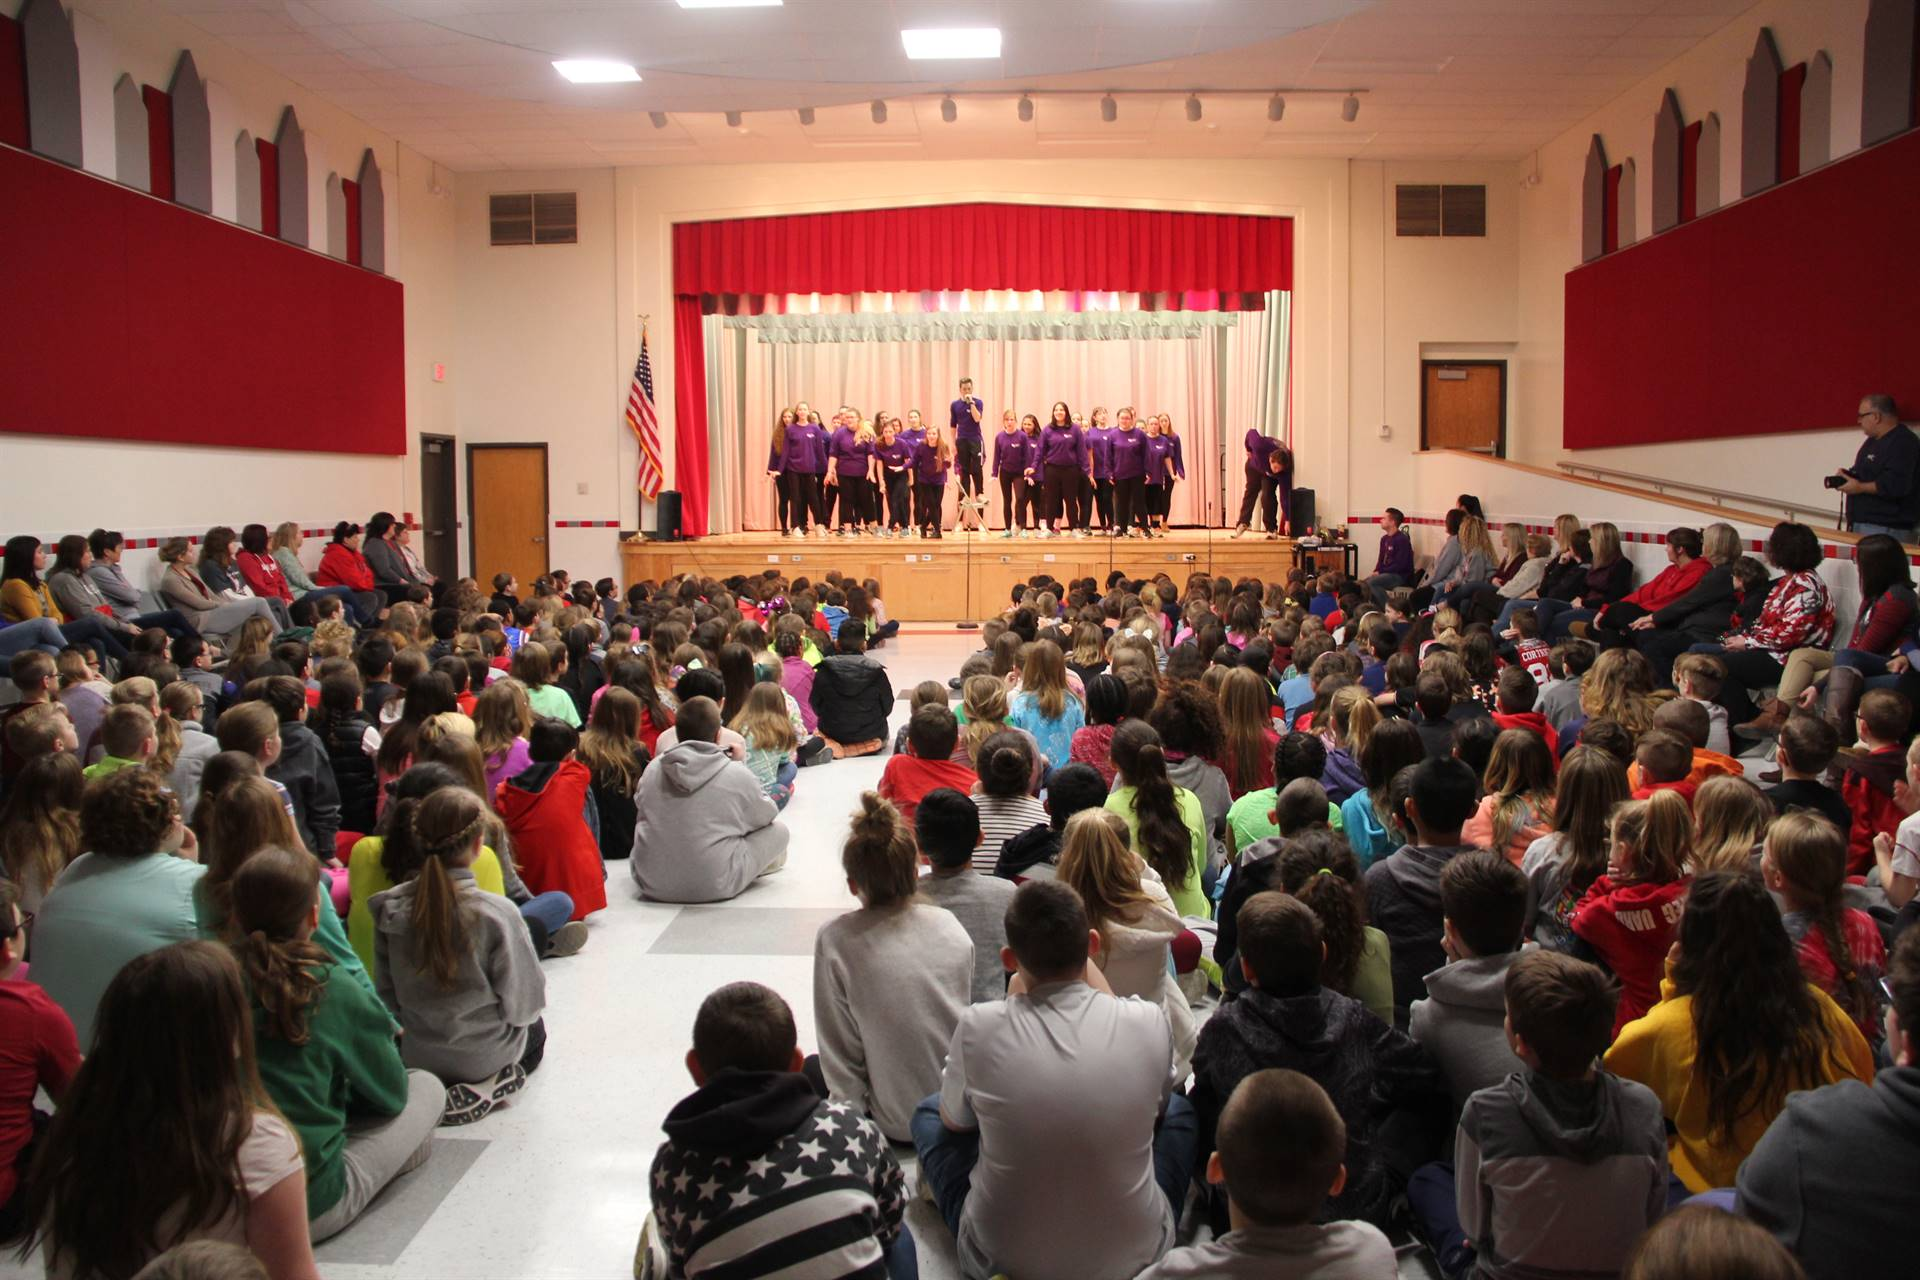 Cinderella Preview Performance at Chenango Bridge Elementary 13